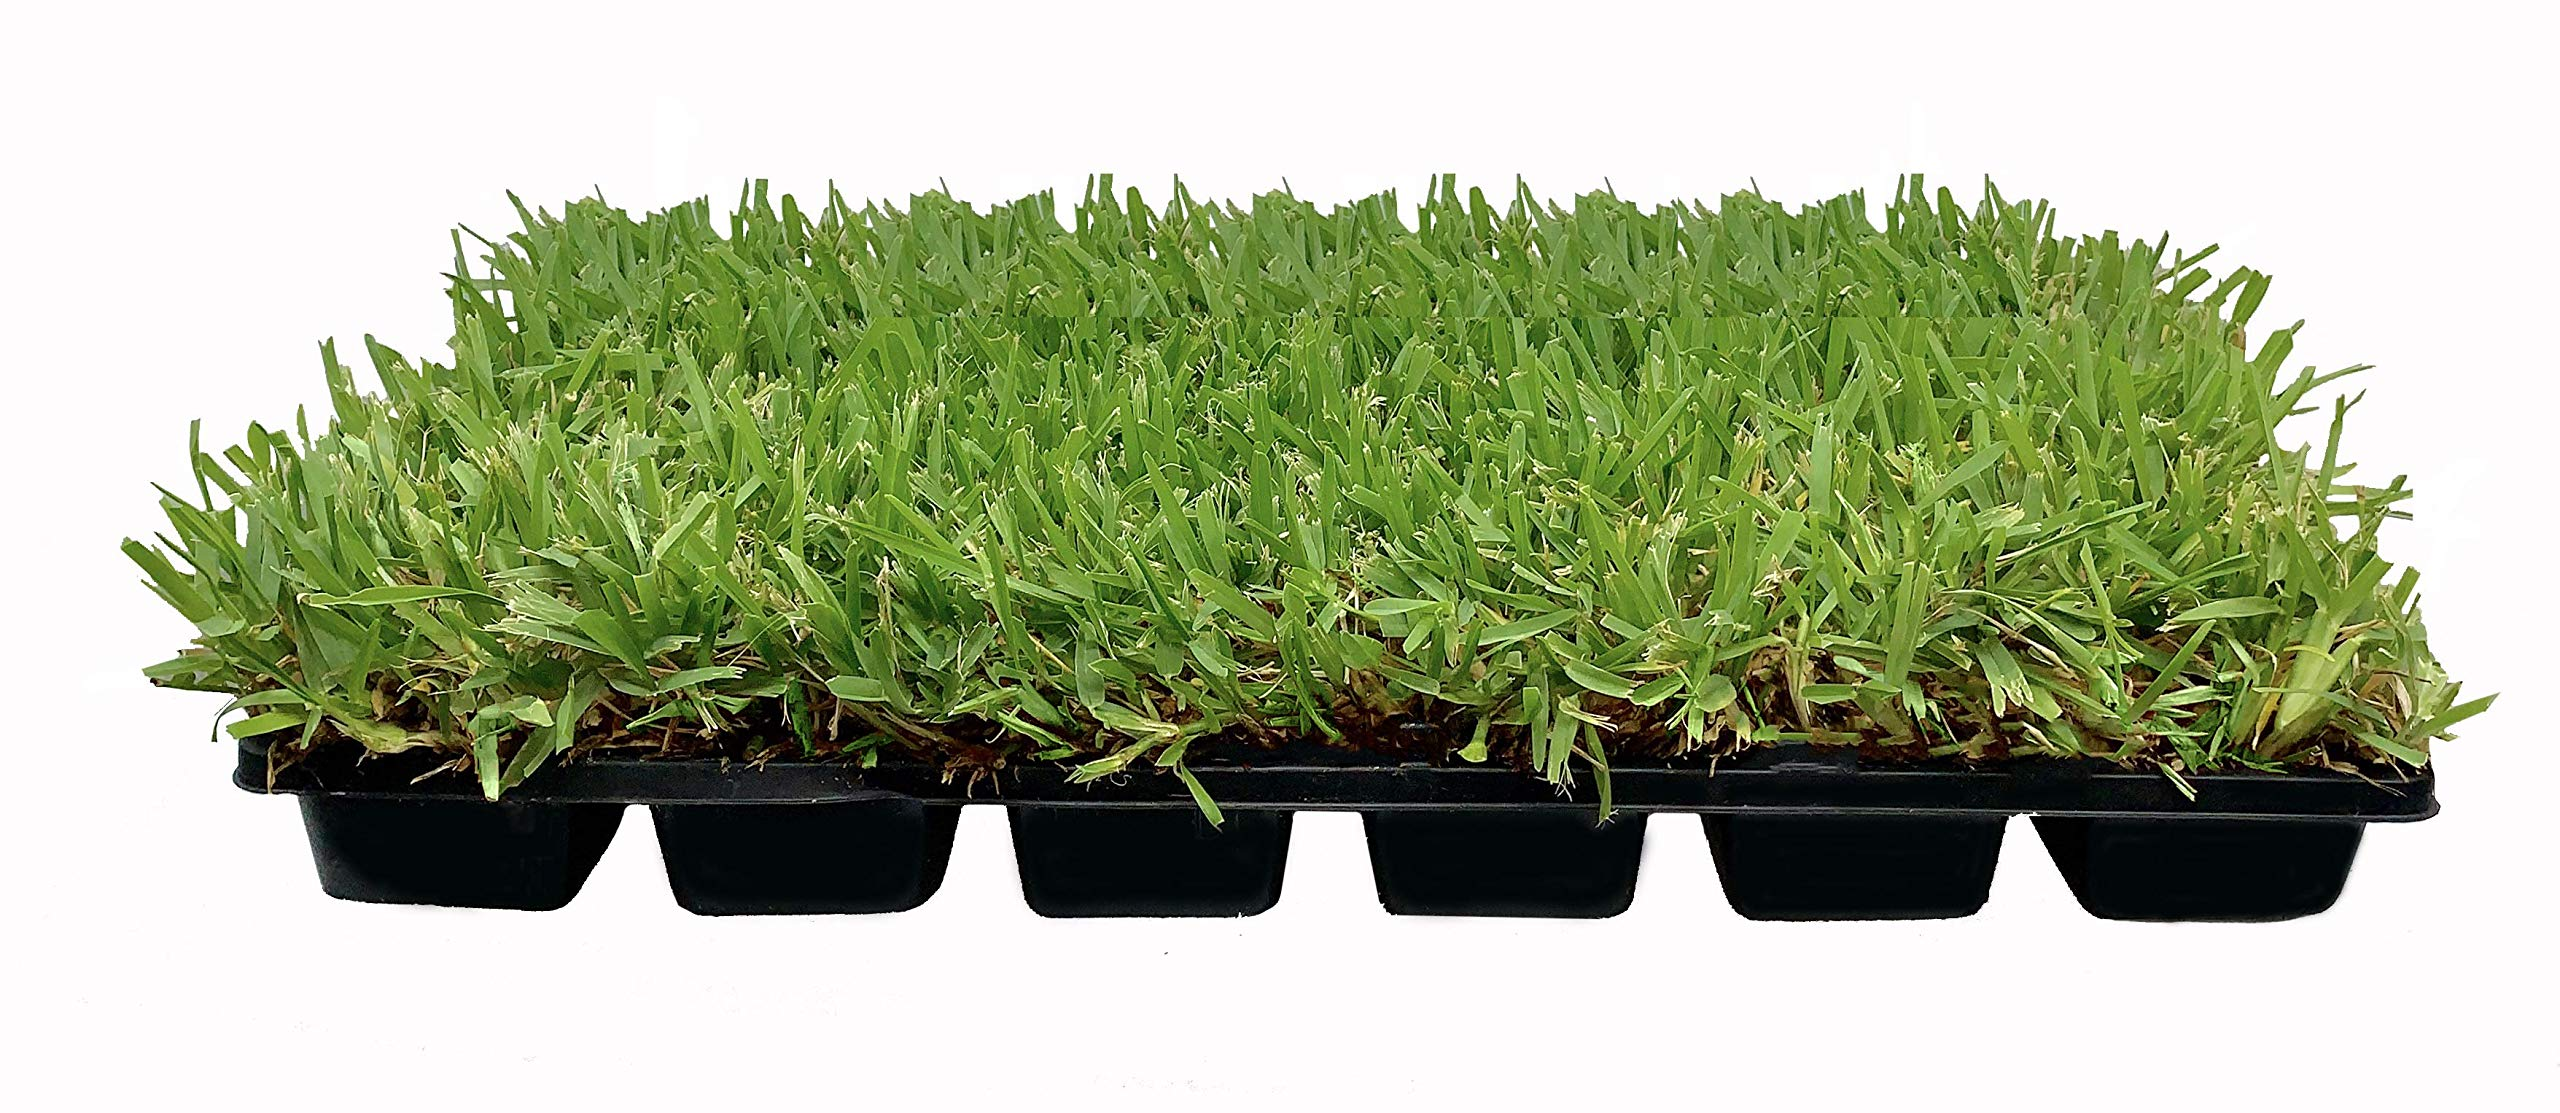 St. Augustine 'Palmetto' 3 Inch Sod Plugs - 18 Plugs - Drought, Salt, Shade, Cold, Heat & Frost Tolerant Turf Grass by Florida Foliage (Image #1)